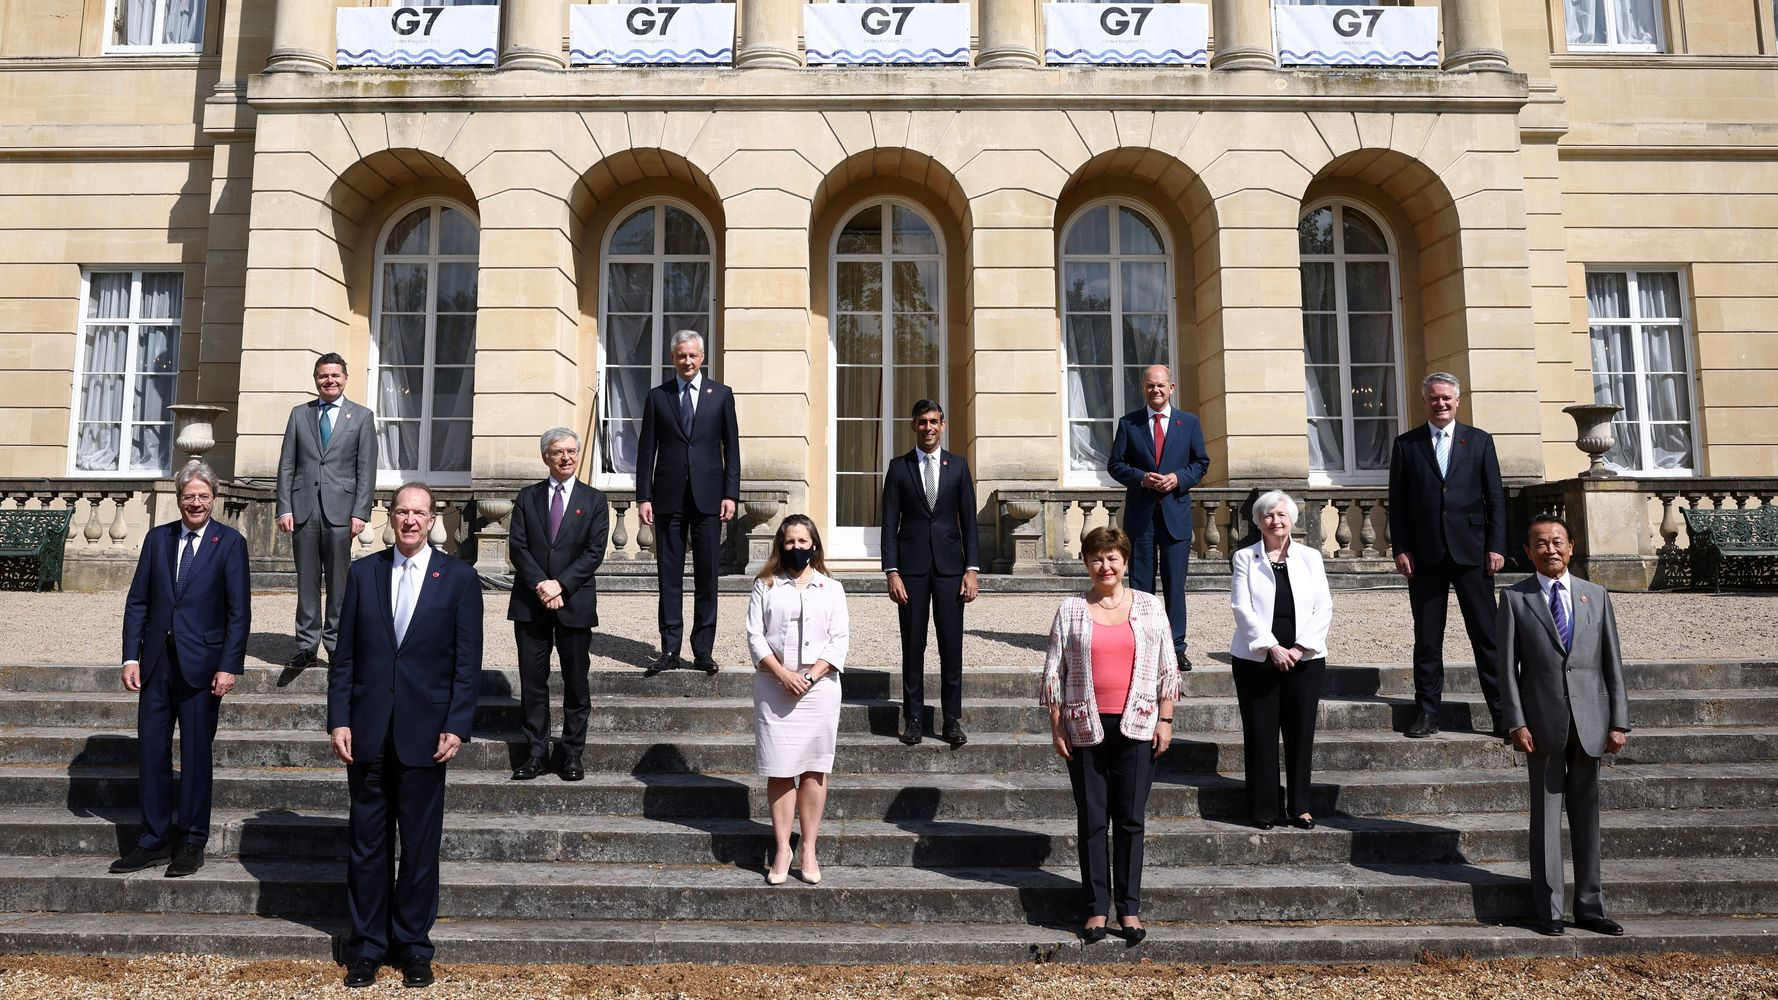 G-7 Nations Sign Pact To Make Corporations Pay Fairer Taxes